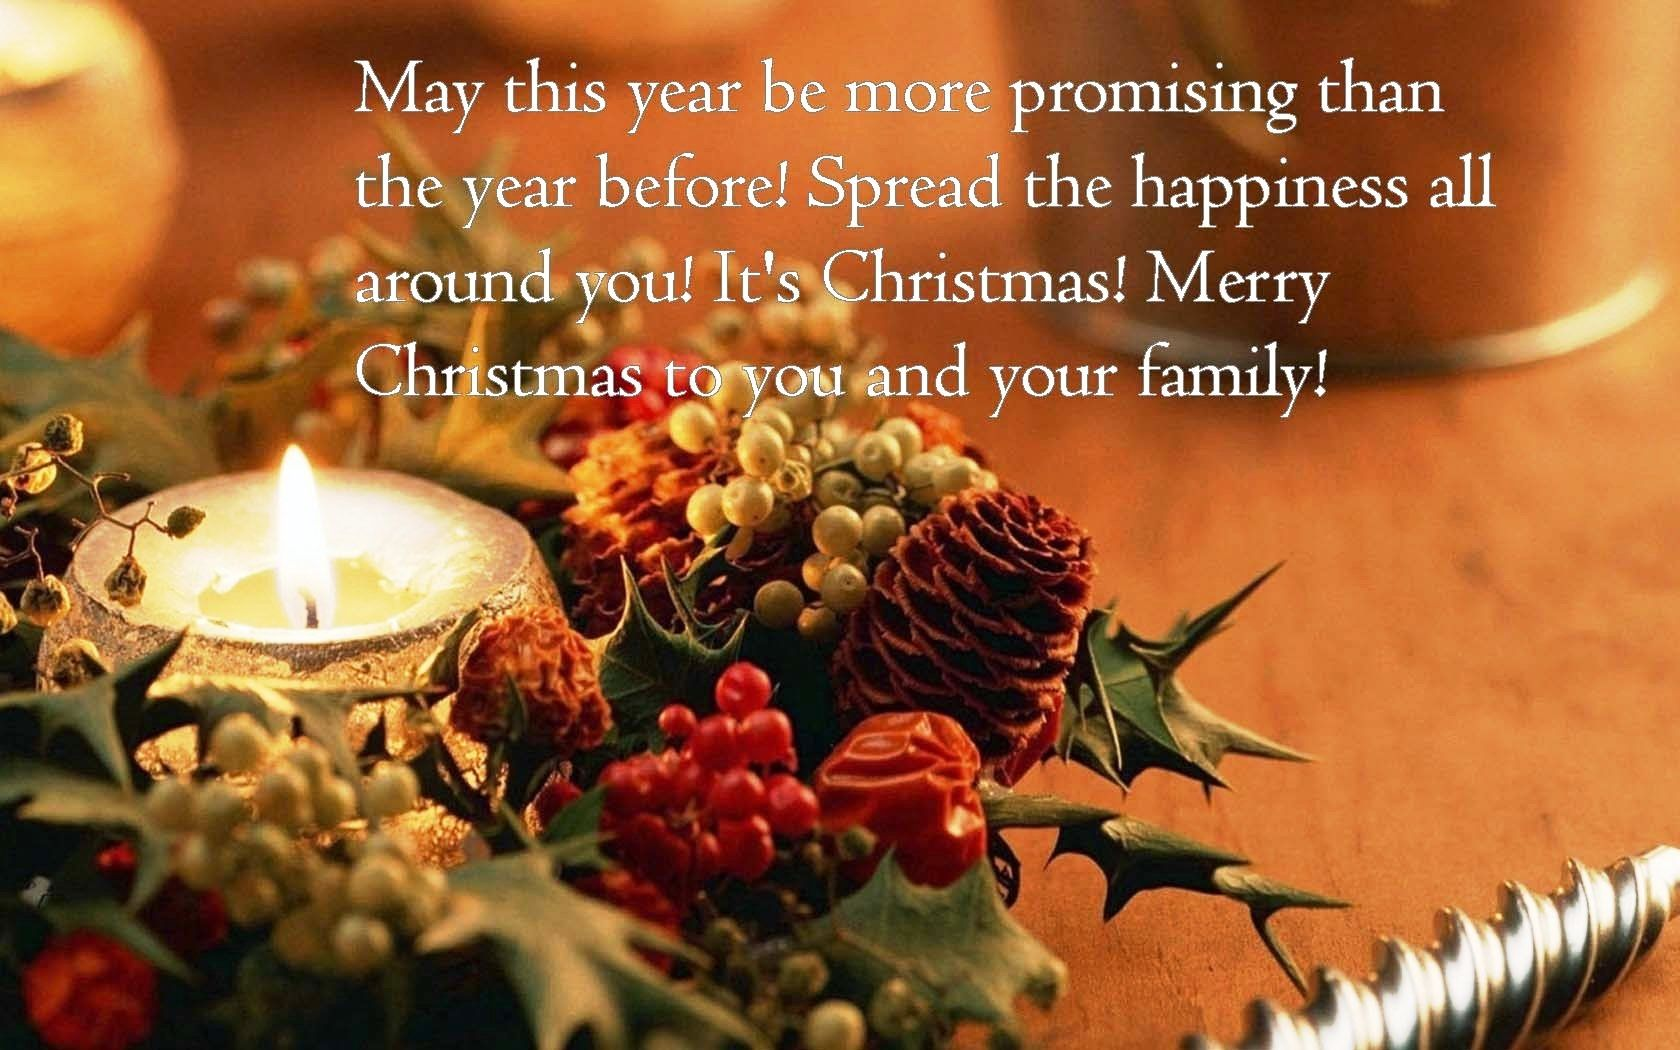 Merry Christmas Family Quotes 2018 Here We Will Discuss Merry